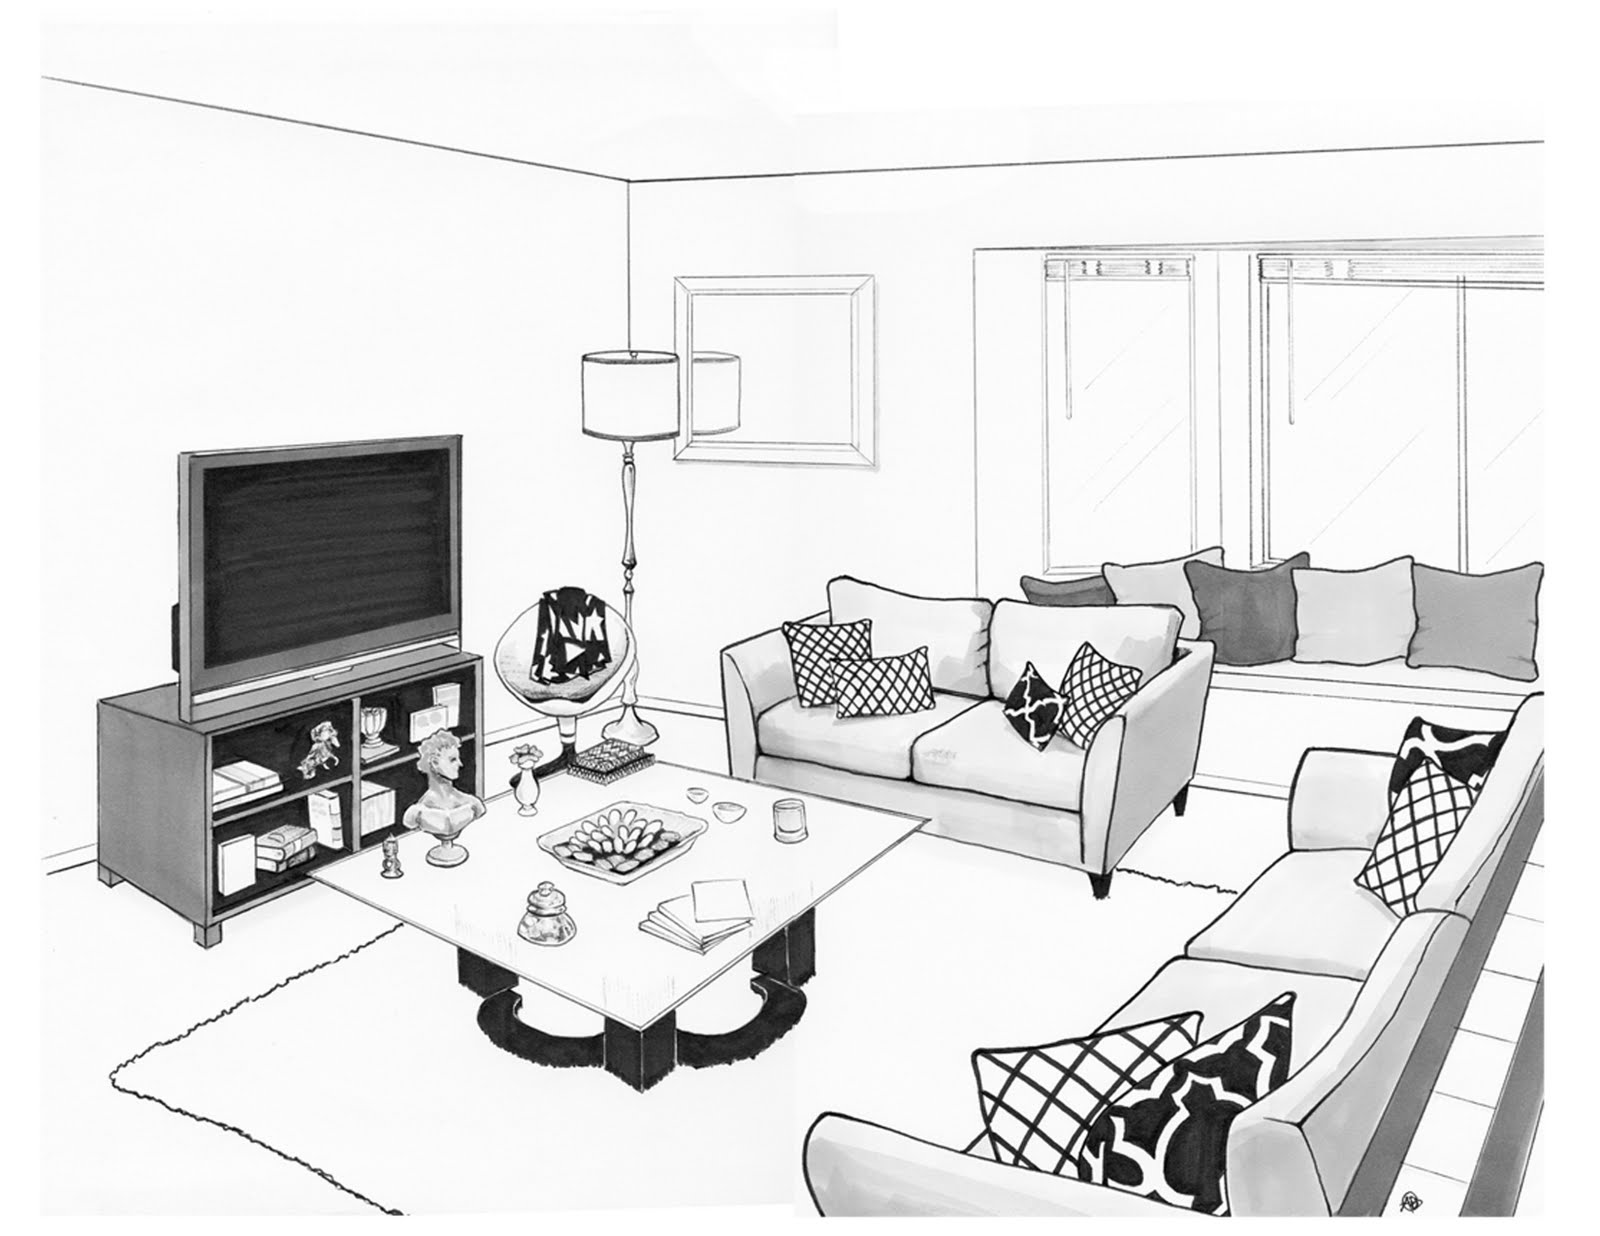 Dining room perspective drawing - Draw A Room Flako Render Drawing Of Andres Living Room